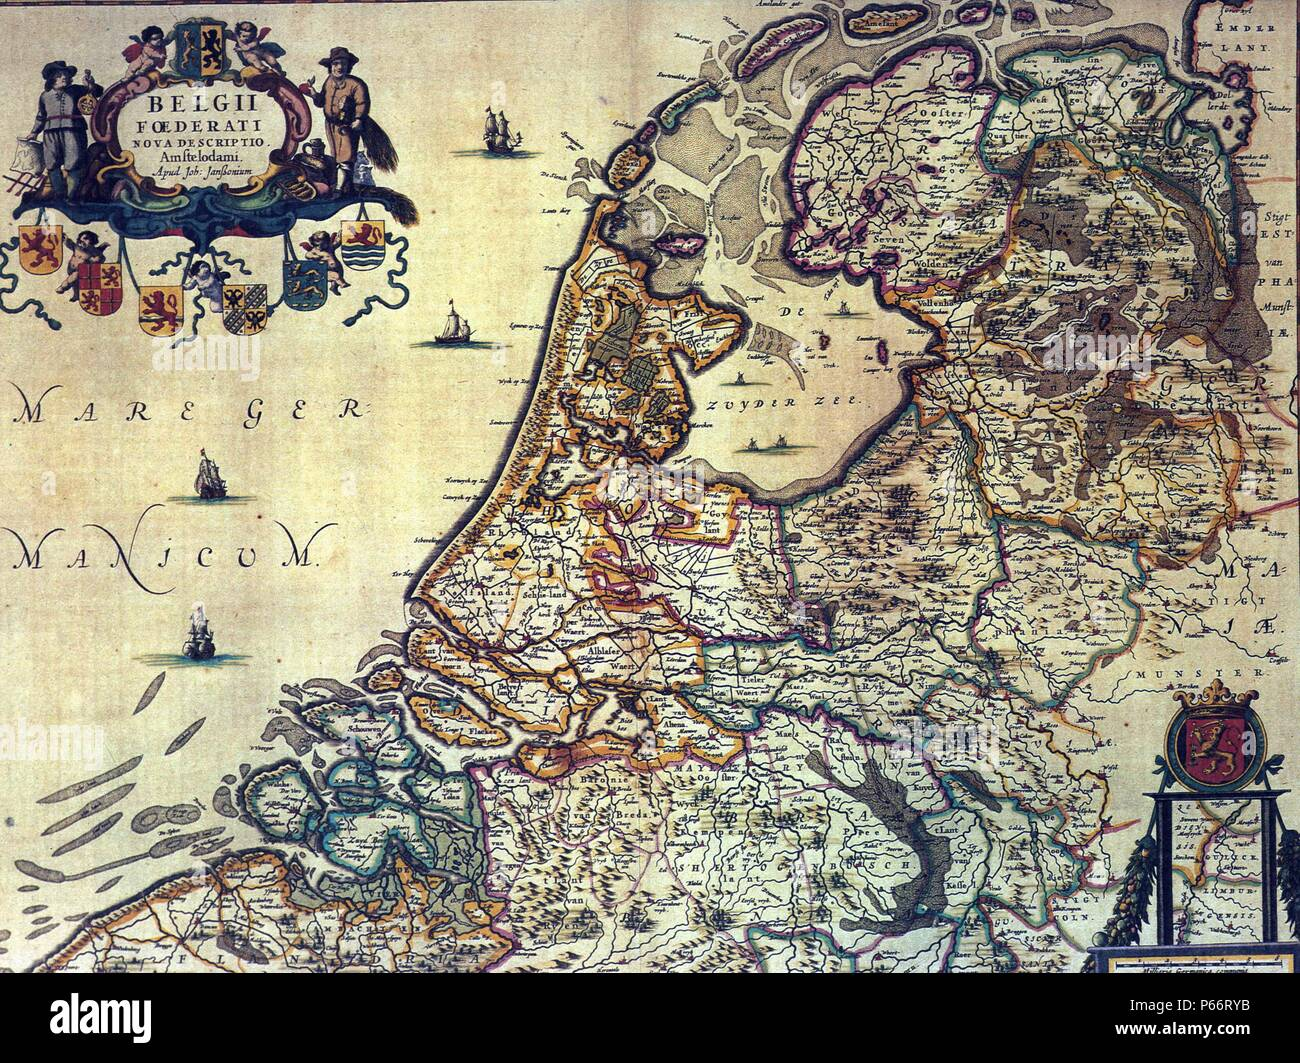 1658 map of the Dutch Republic. The Dutch Republic was known as the Republic of the Seven United Netherlands (Republiek der Zeven Verenigde Nederlanden) existed 1581 to 1795 - Stock Image